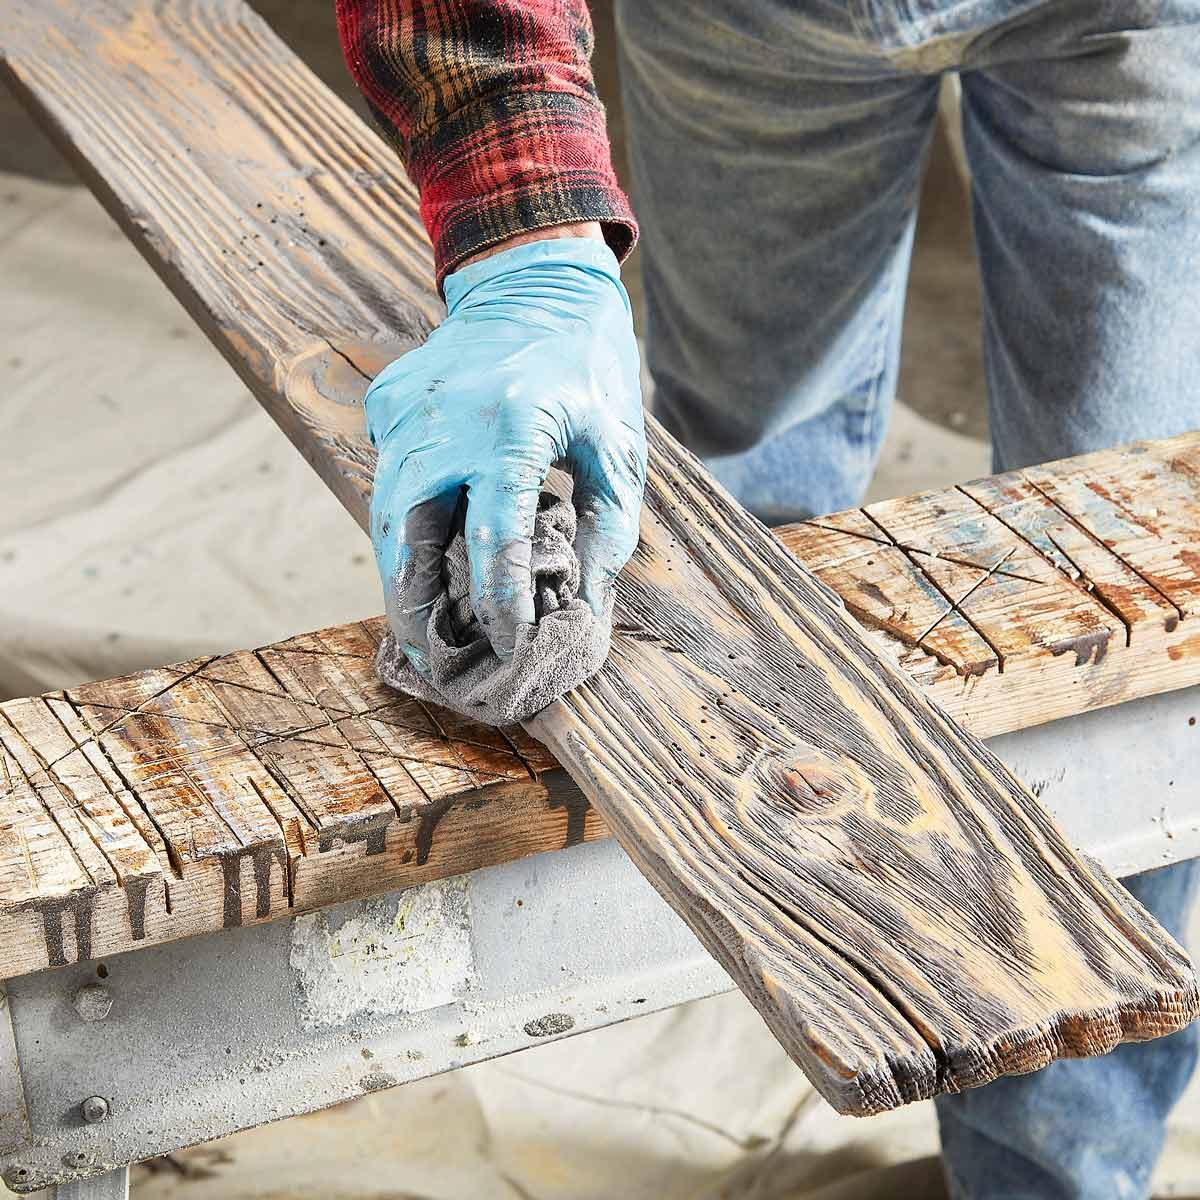 40 Outdoor Woodworking Projects For Beginners: Make Your Own Barn Wood